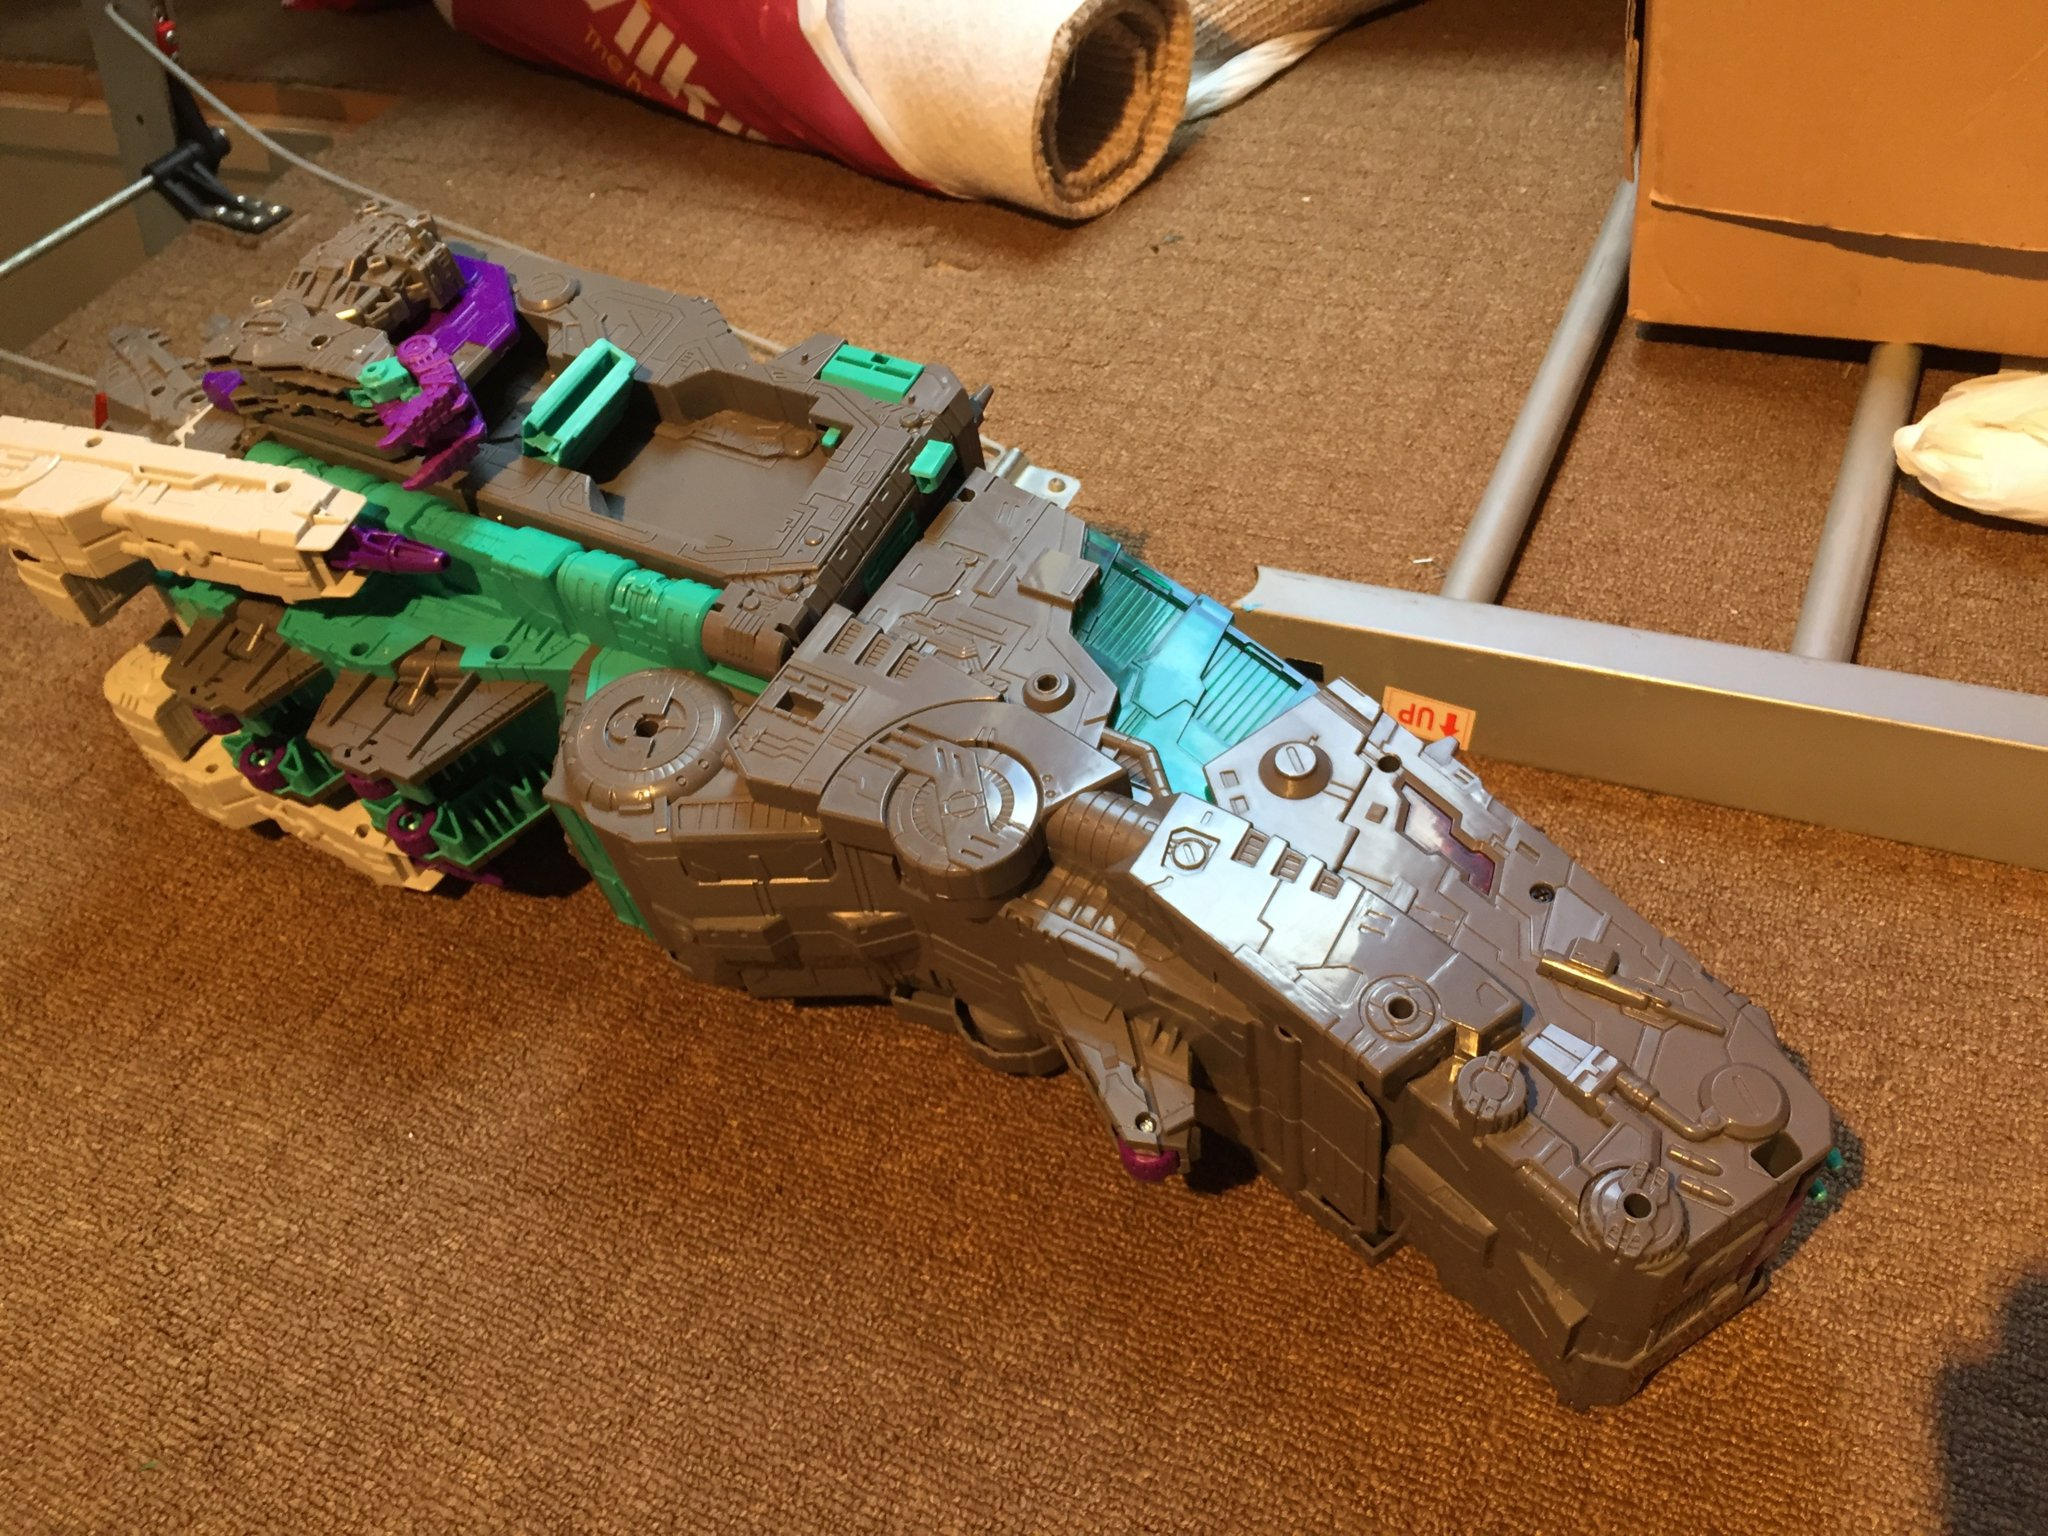 Trypticon tail fix - 3.jpg